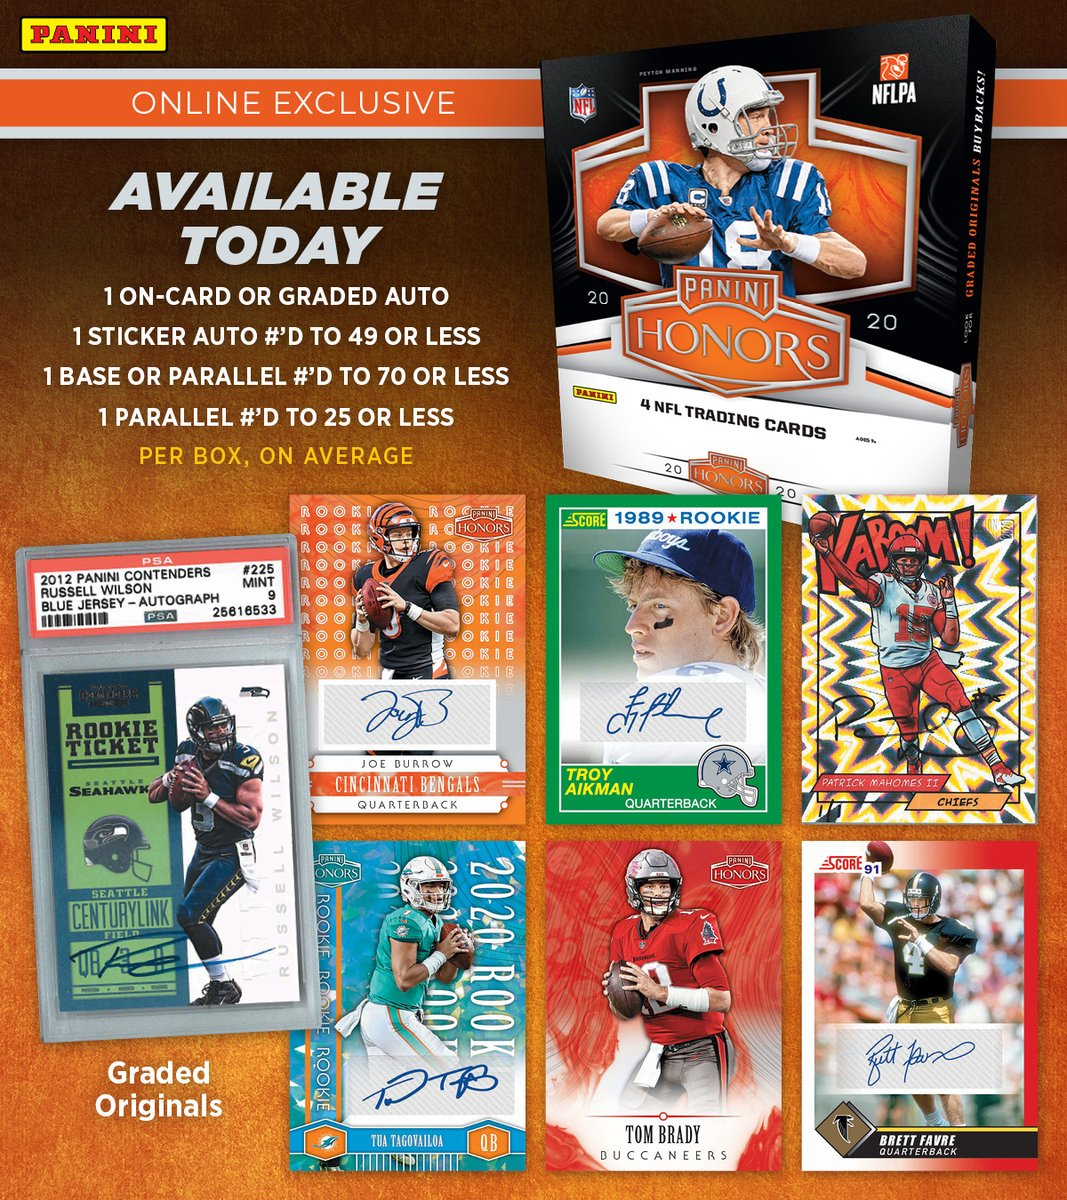 Just 30 minutes until @PaniniAmerica's online-exclusive 2020 Honors @NFL Football launches!  #WhoDoYouCollect | #NFL